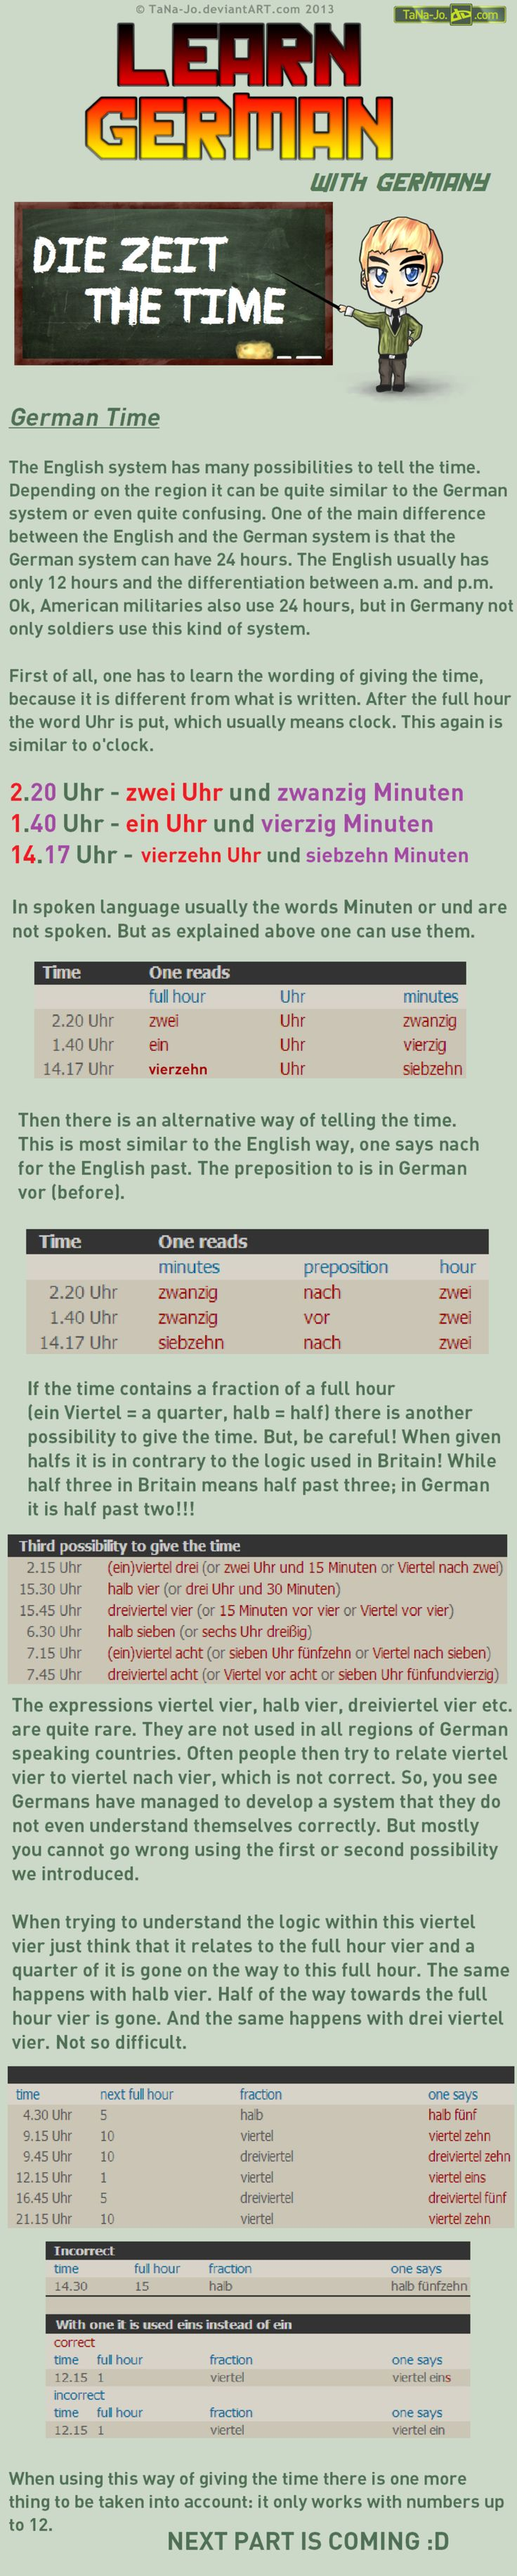 How useful is the German language? - Quora